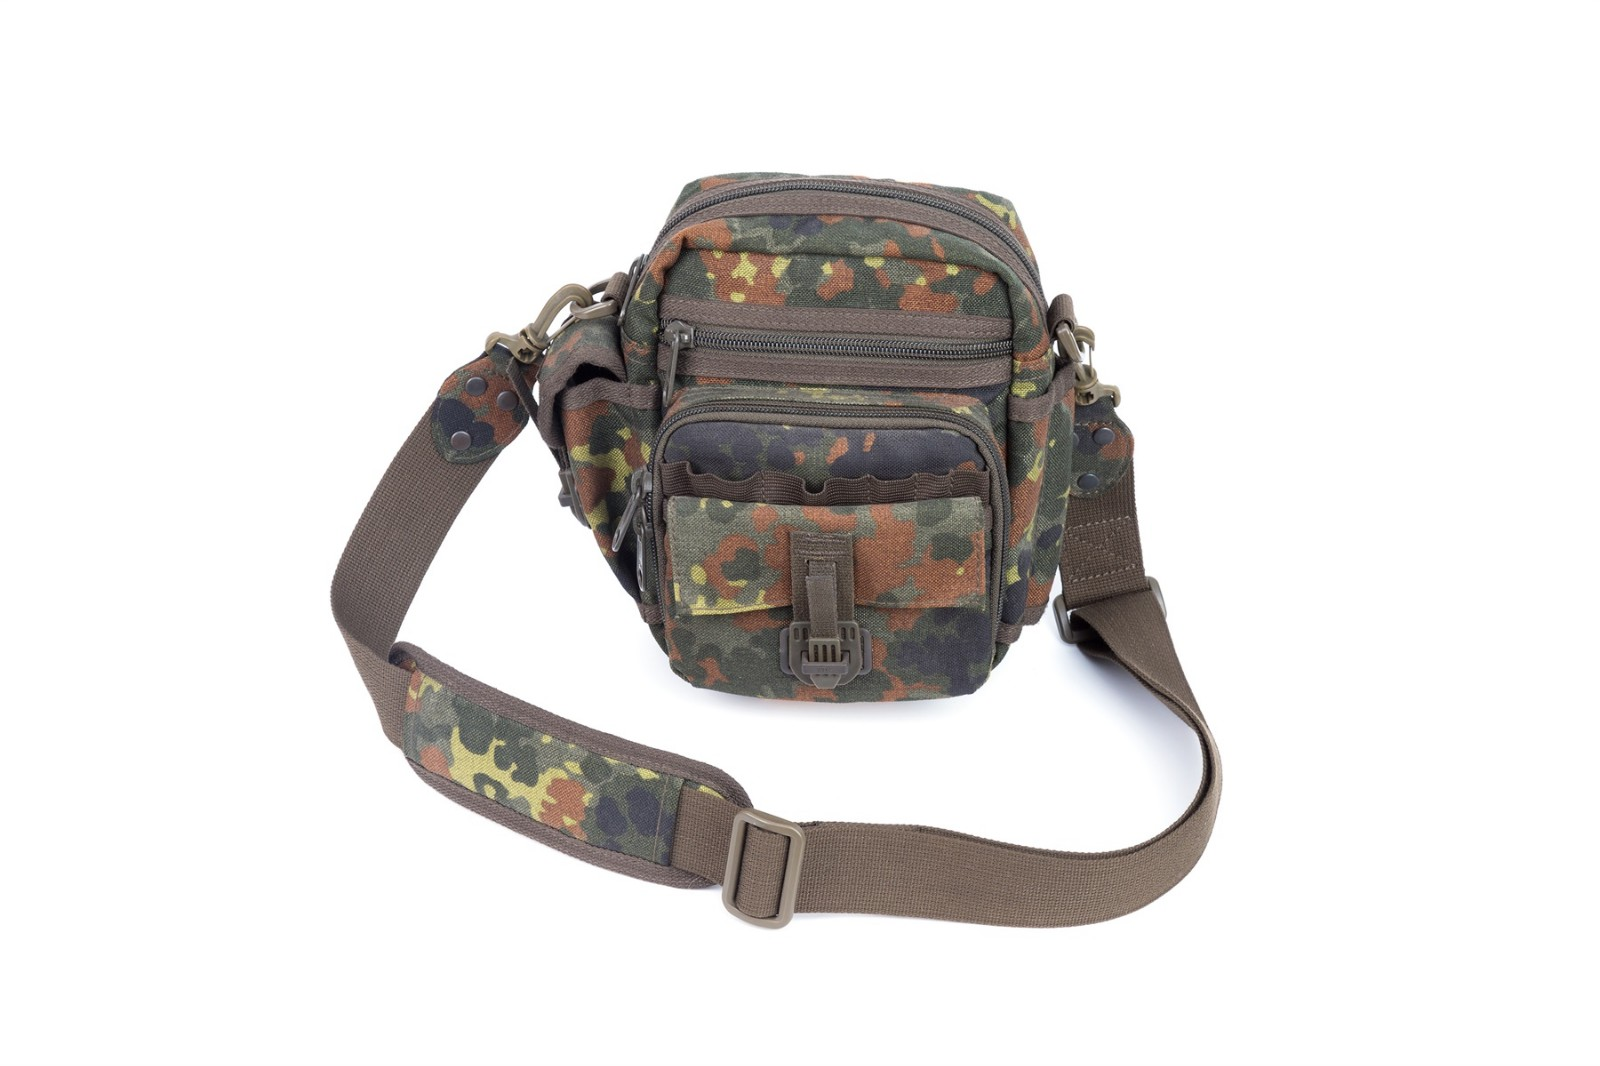 GF bags-Professional Military Gear Bags and Tactical Pouch Bag From GF Bags-8